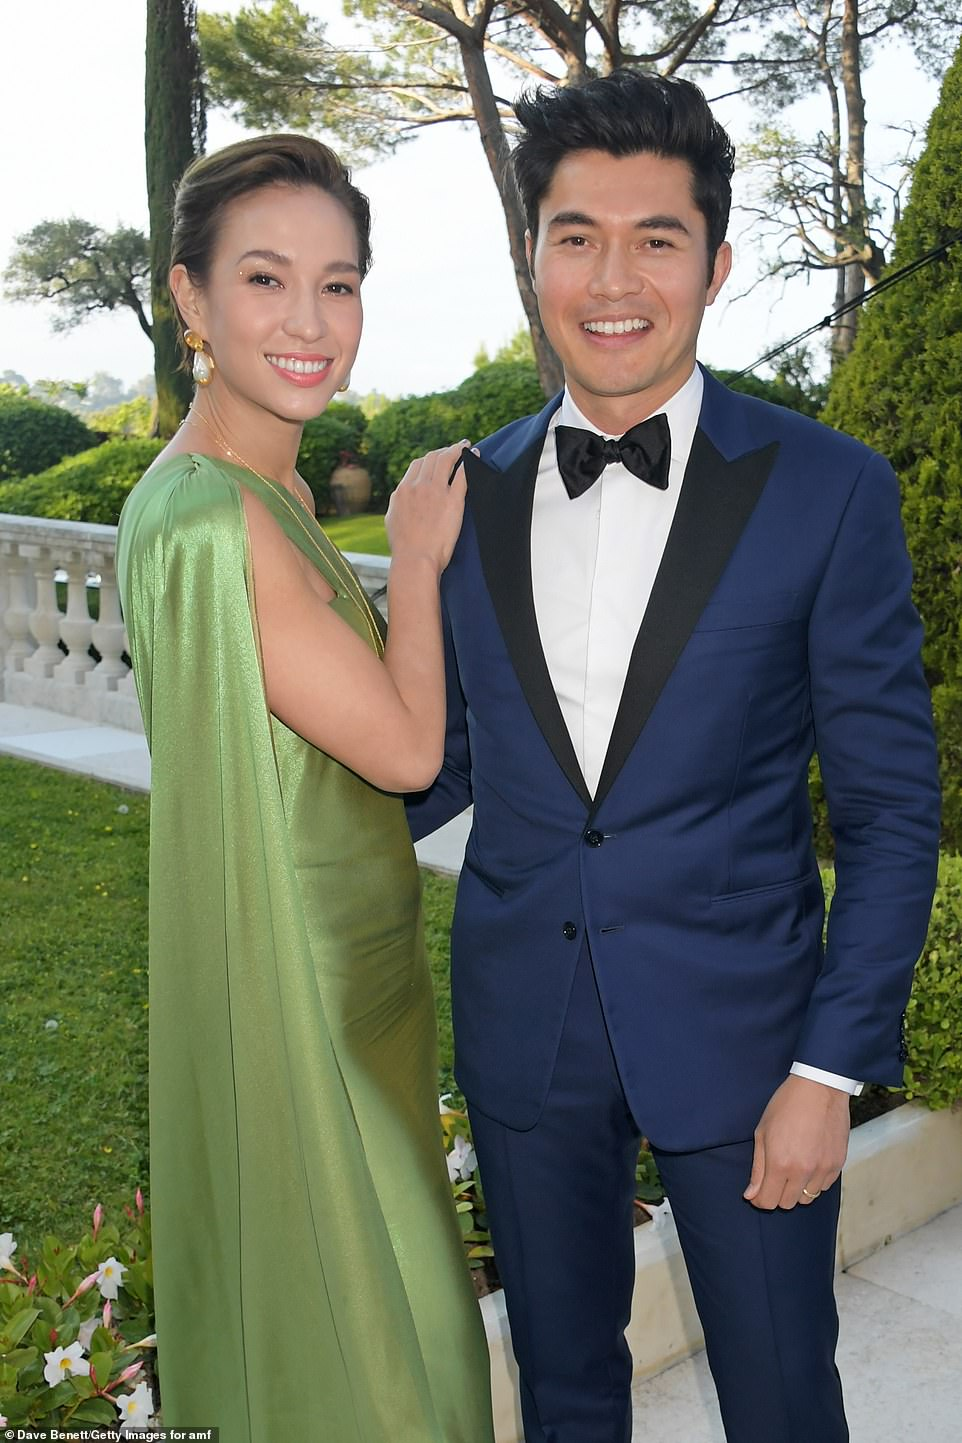 Twosome: Liv Lo Golding and Henry Golding cosied up for a sweet snap in the courtyard